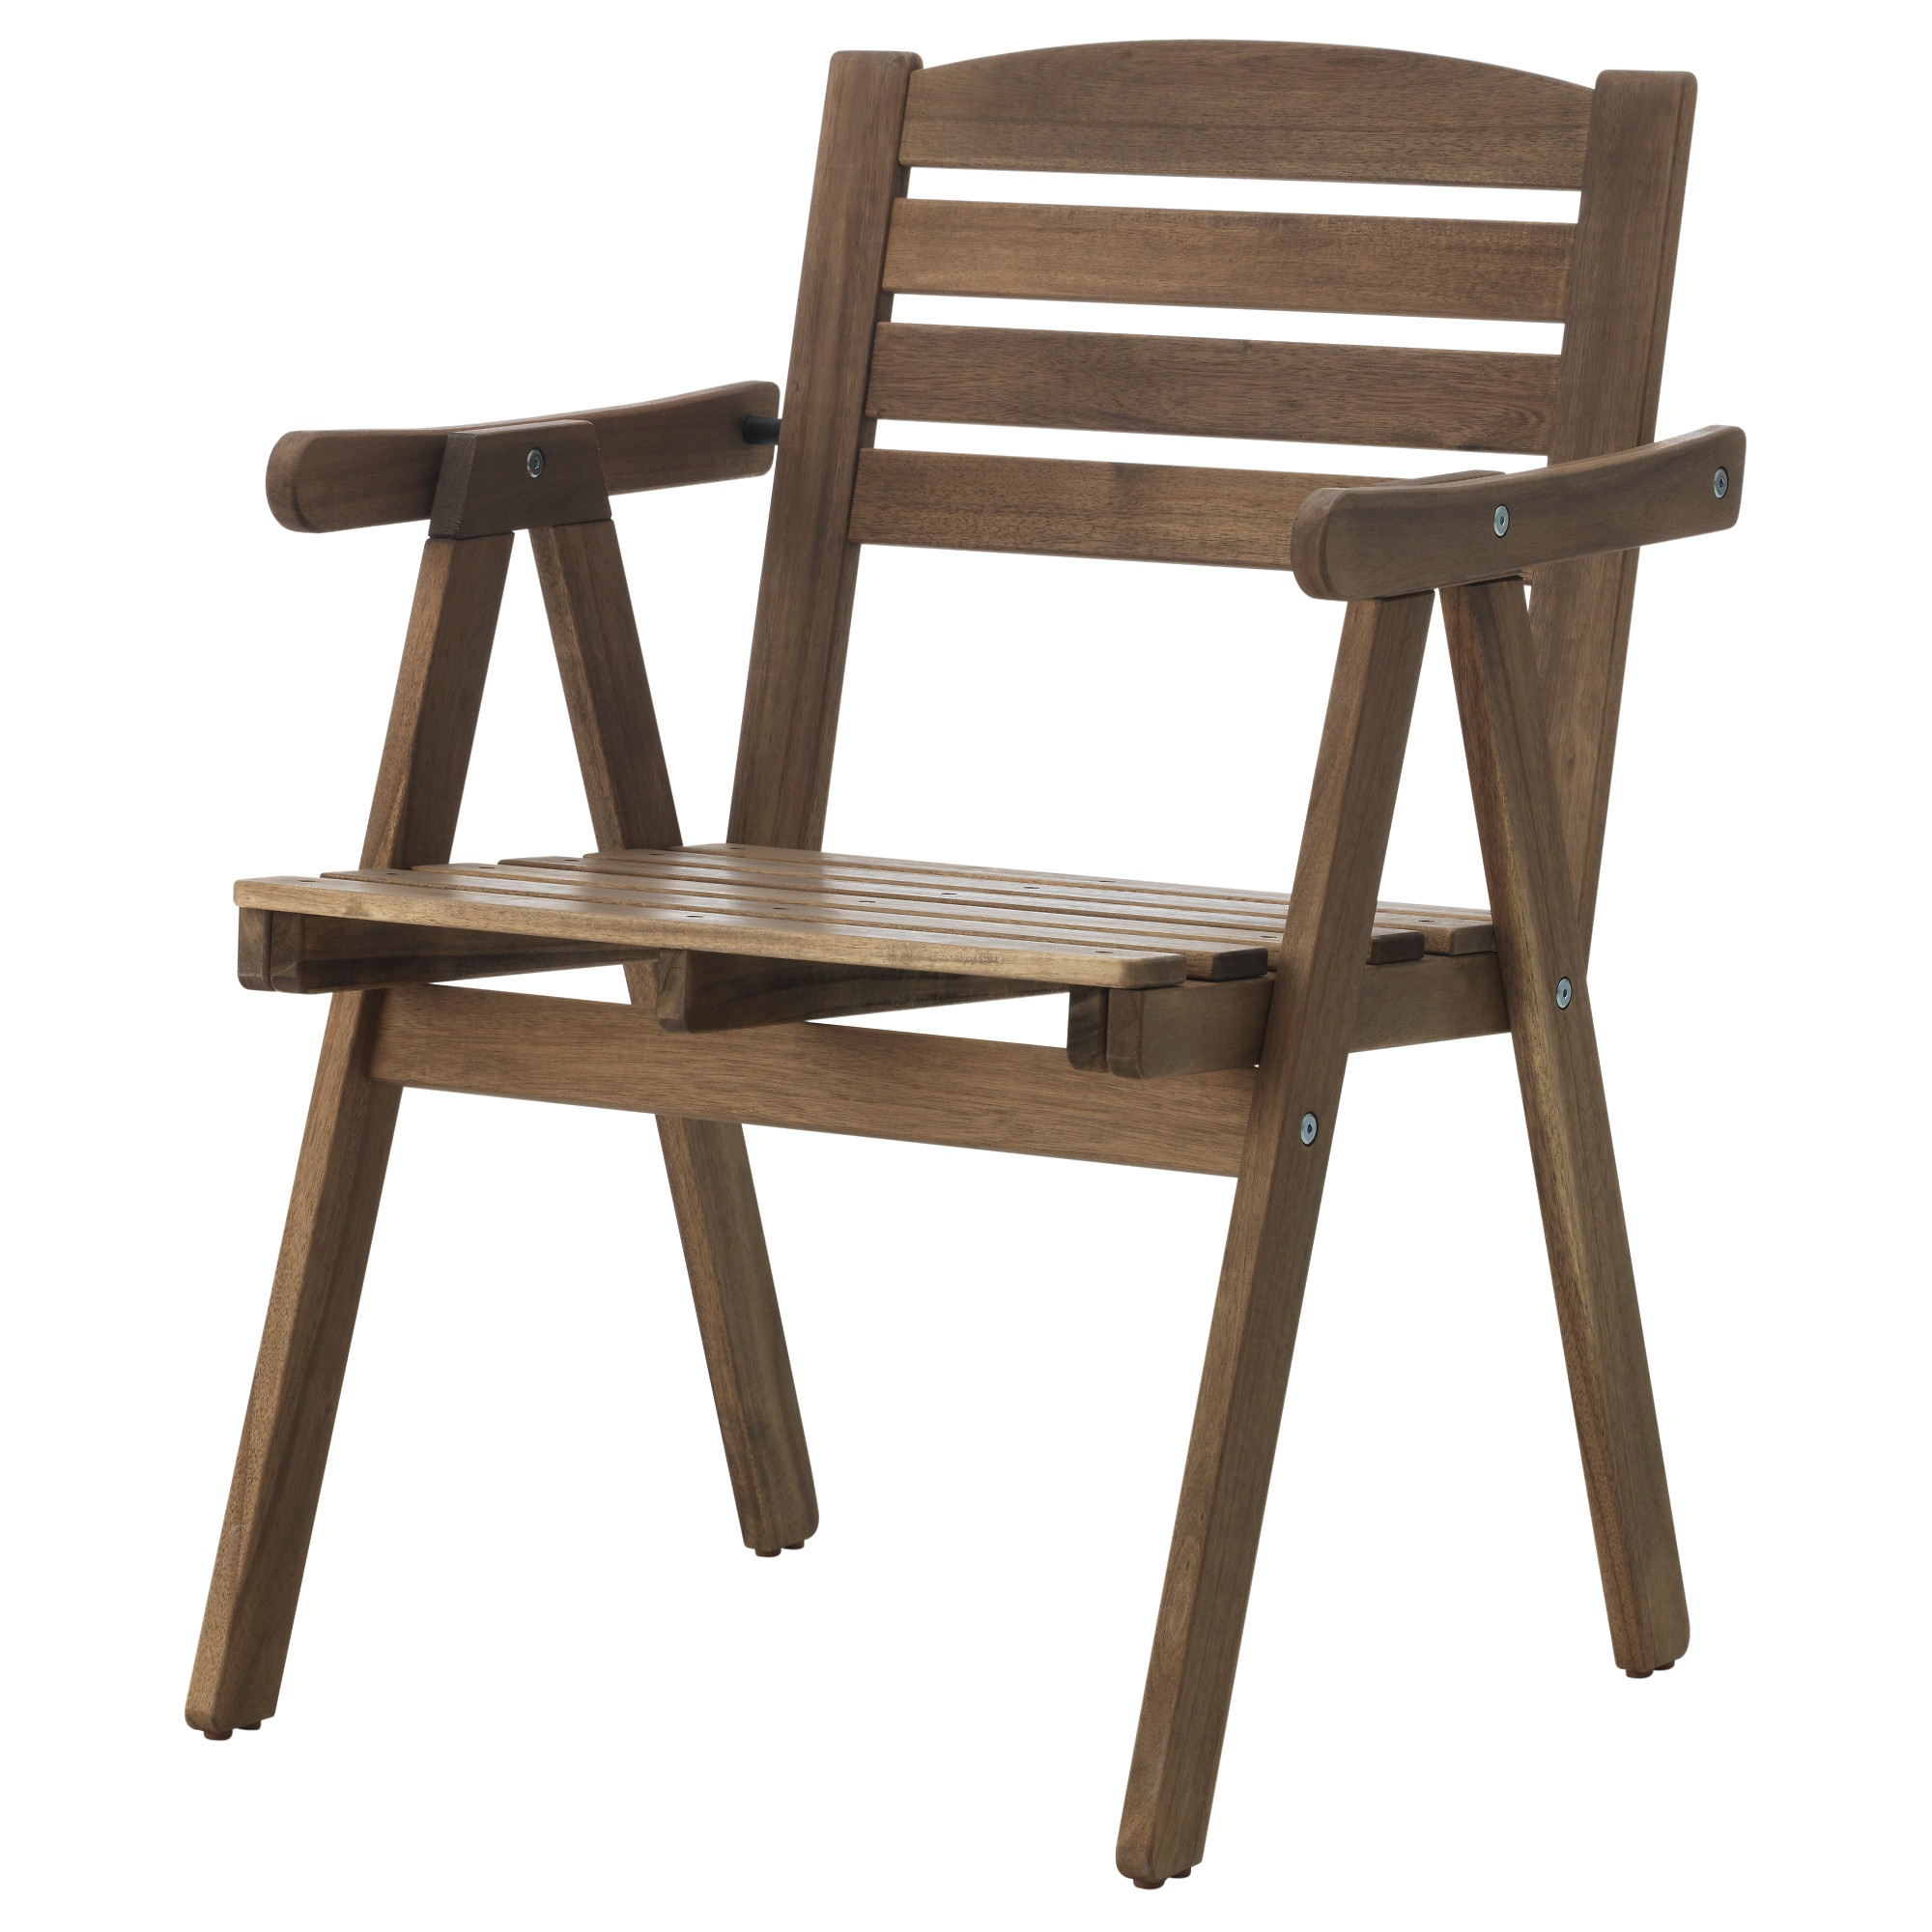 Wooden chairs with armrest - Falholmen Armchair Outdoor Gray Brown Stained Width 22 1 2